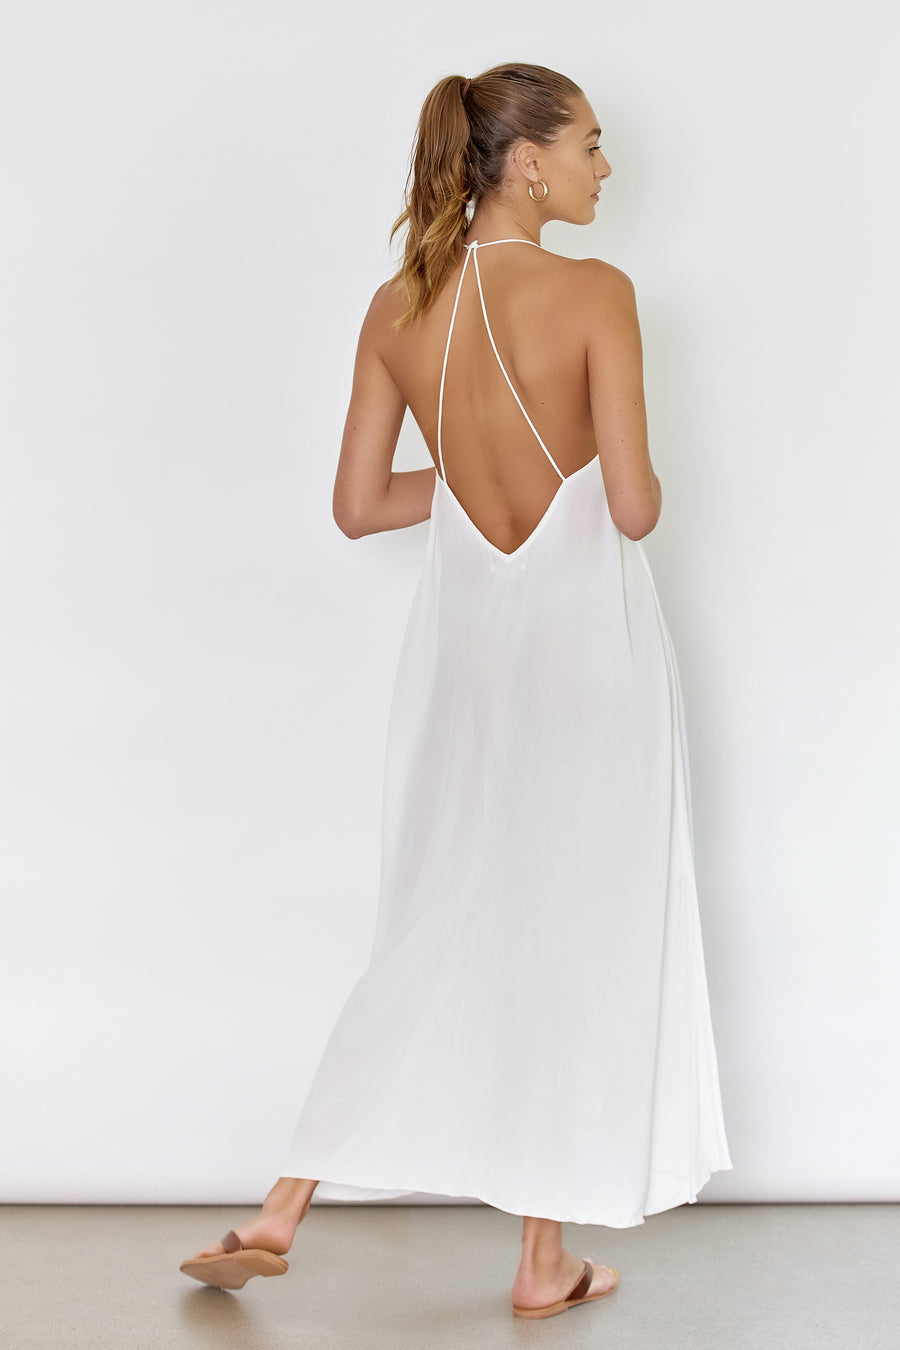 SUNSEEKER DRESS - OFF WHITE